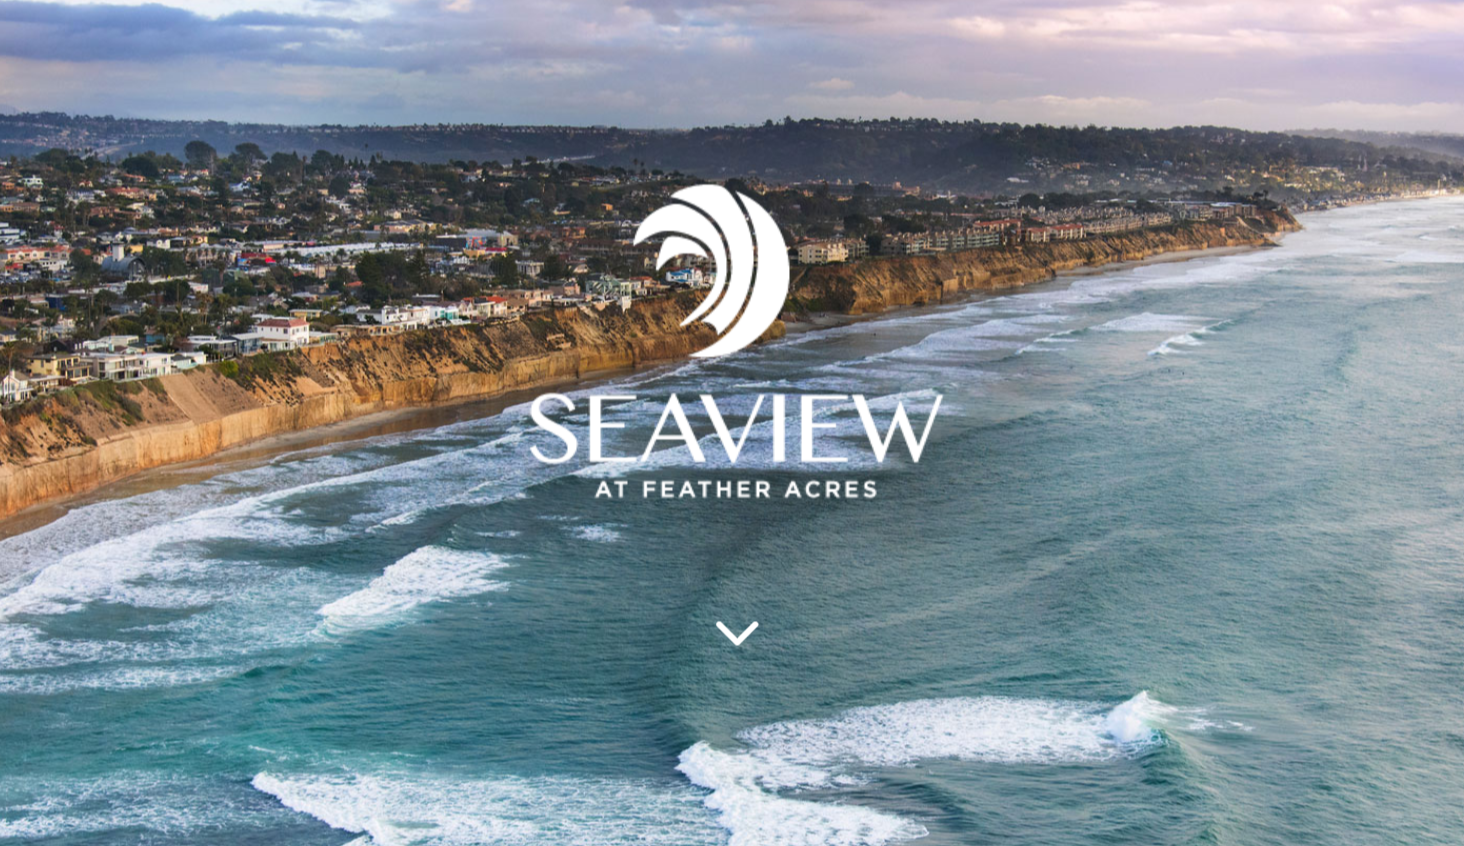 Mana Launches Website for Seaview Acres